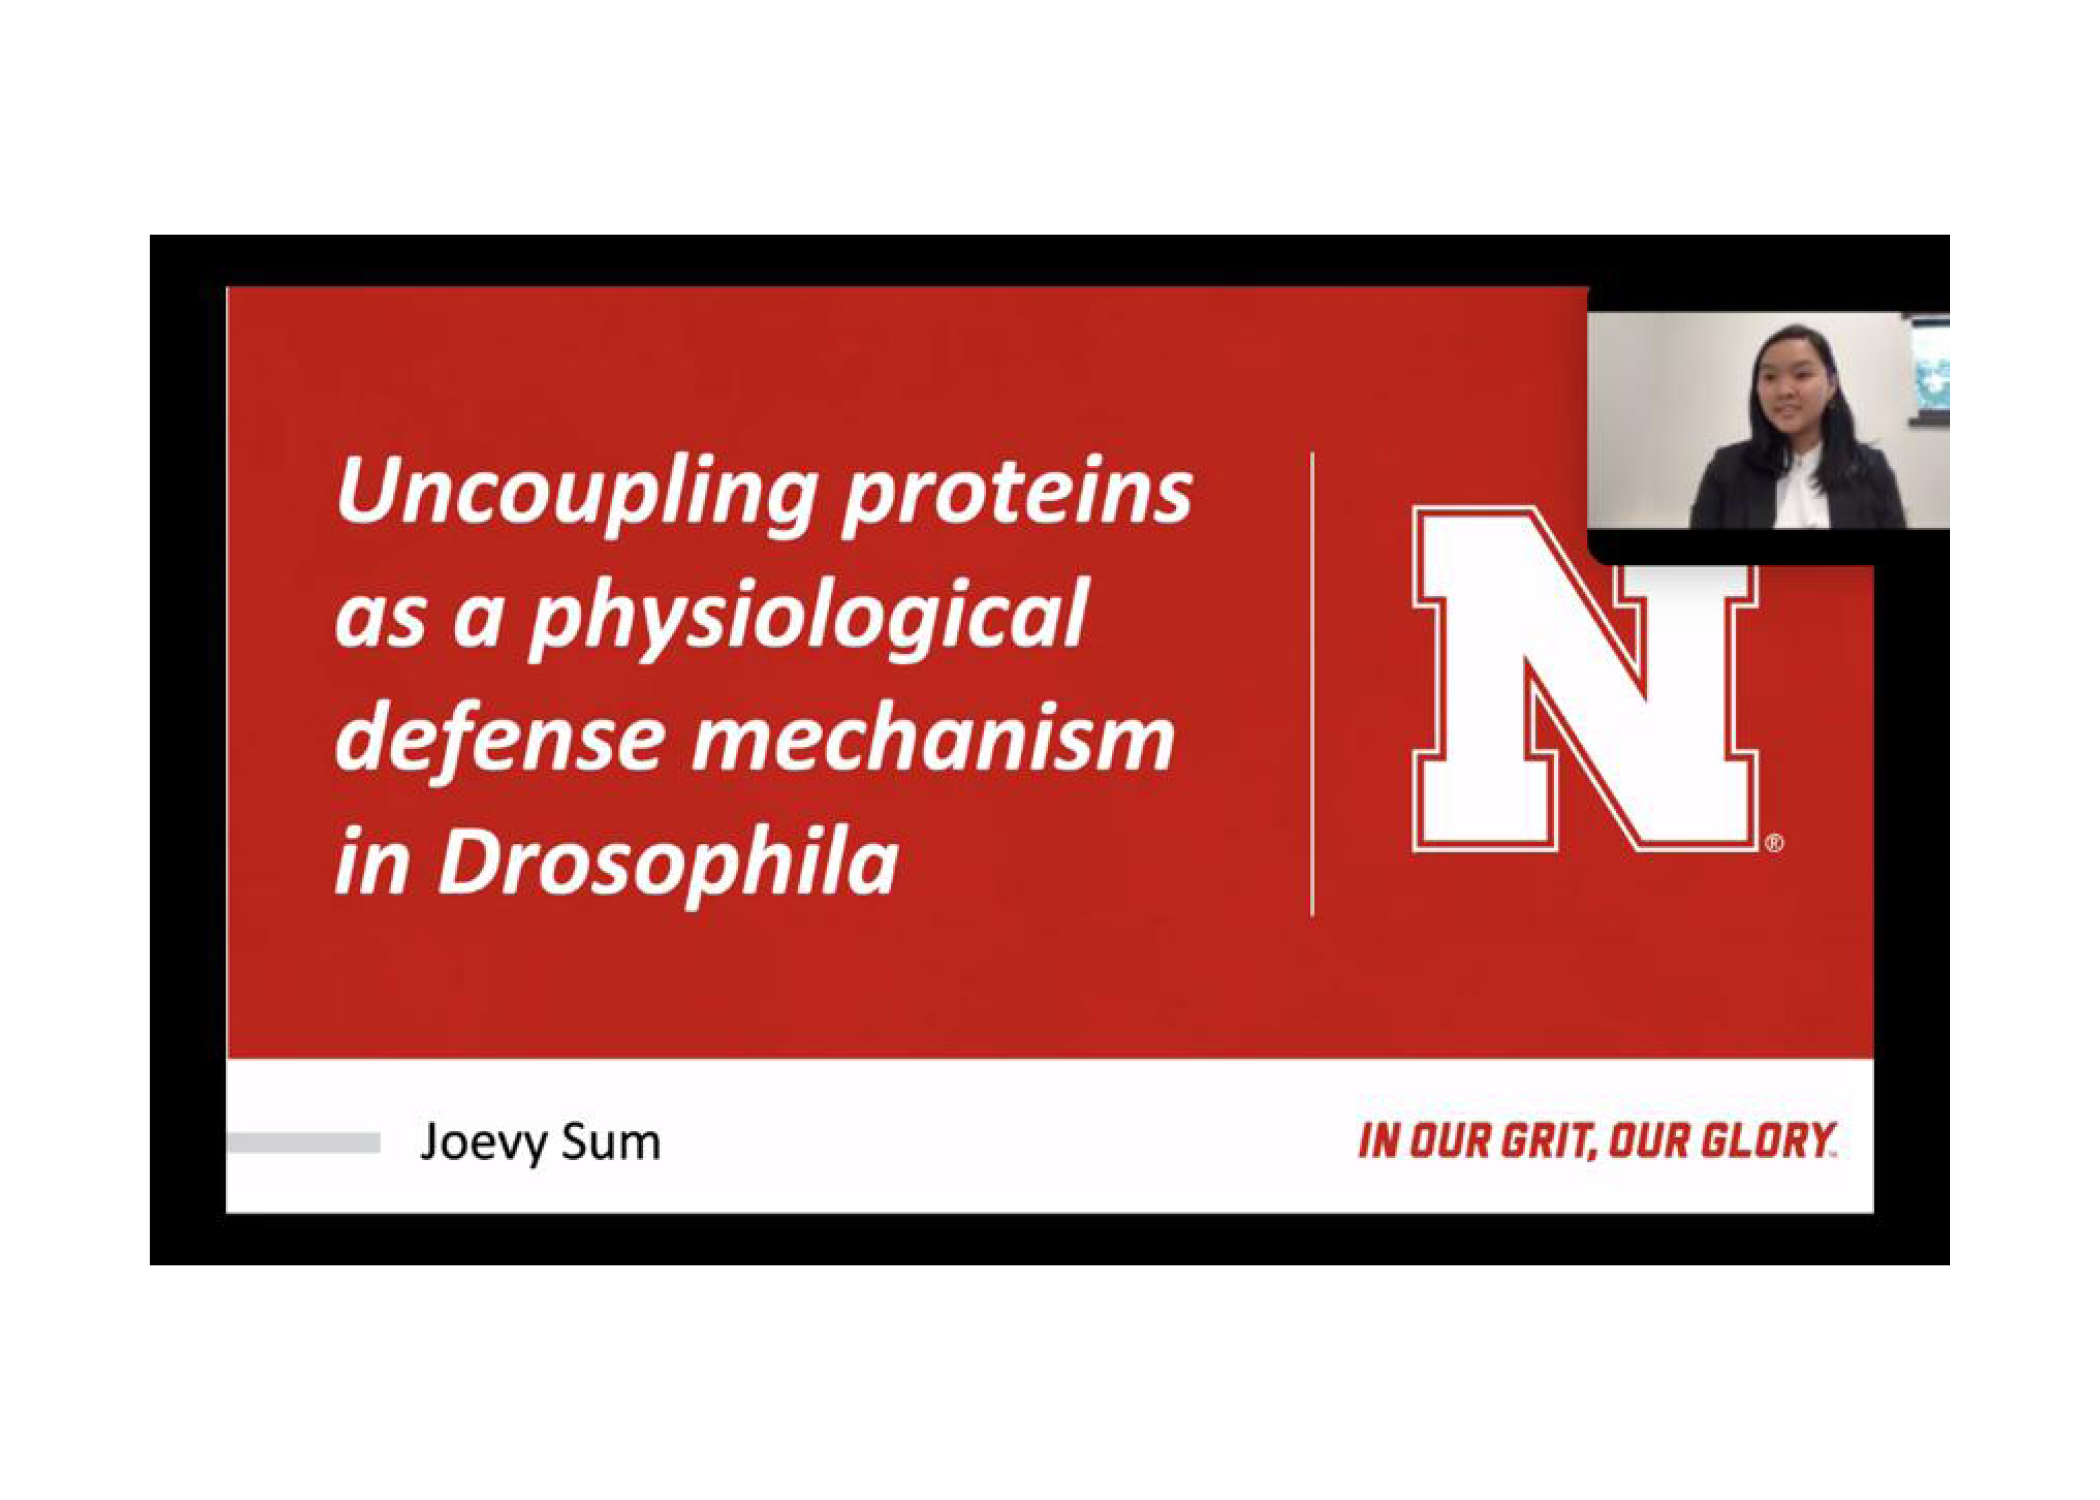 Joevy Sum, a junior at UNL, presents at ICUR on uncoupling proteins.